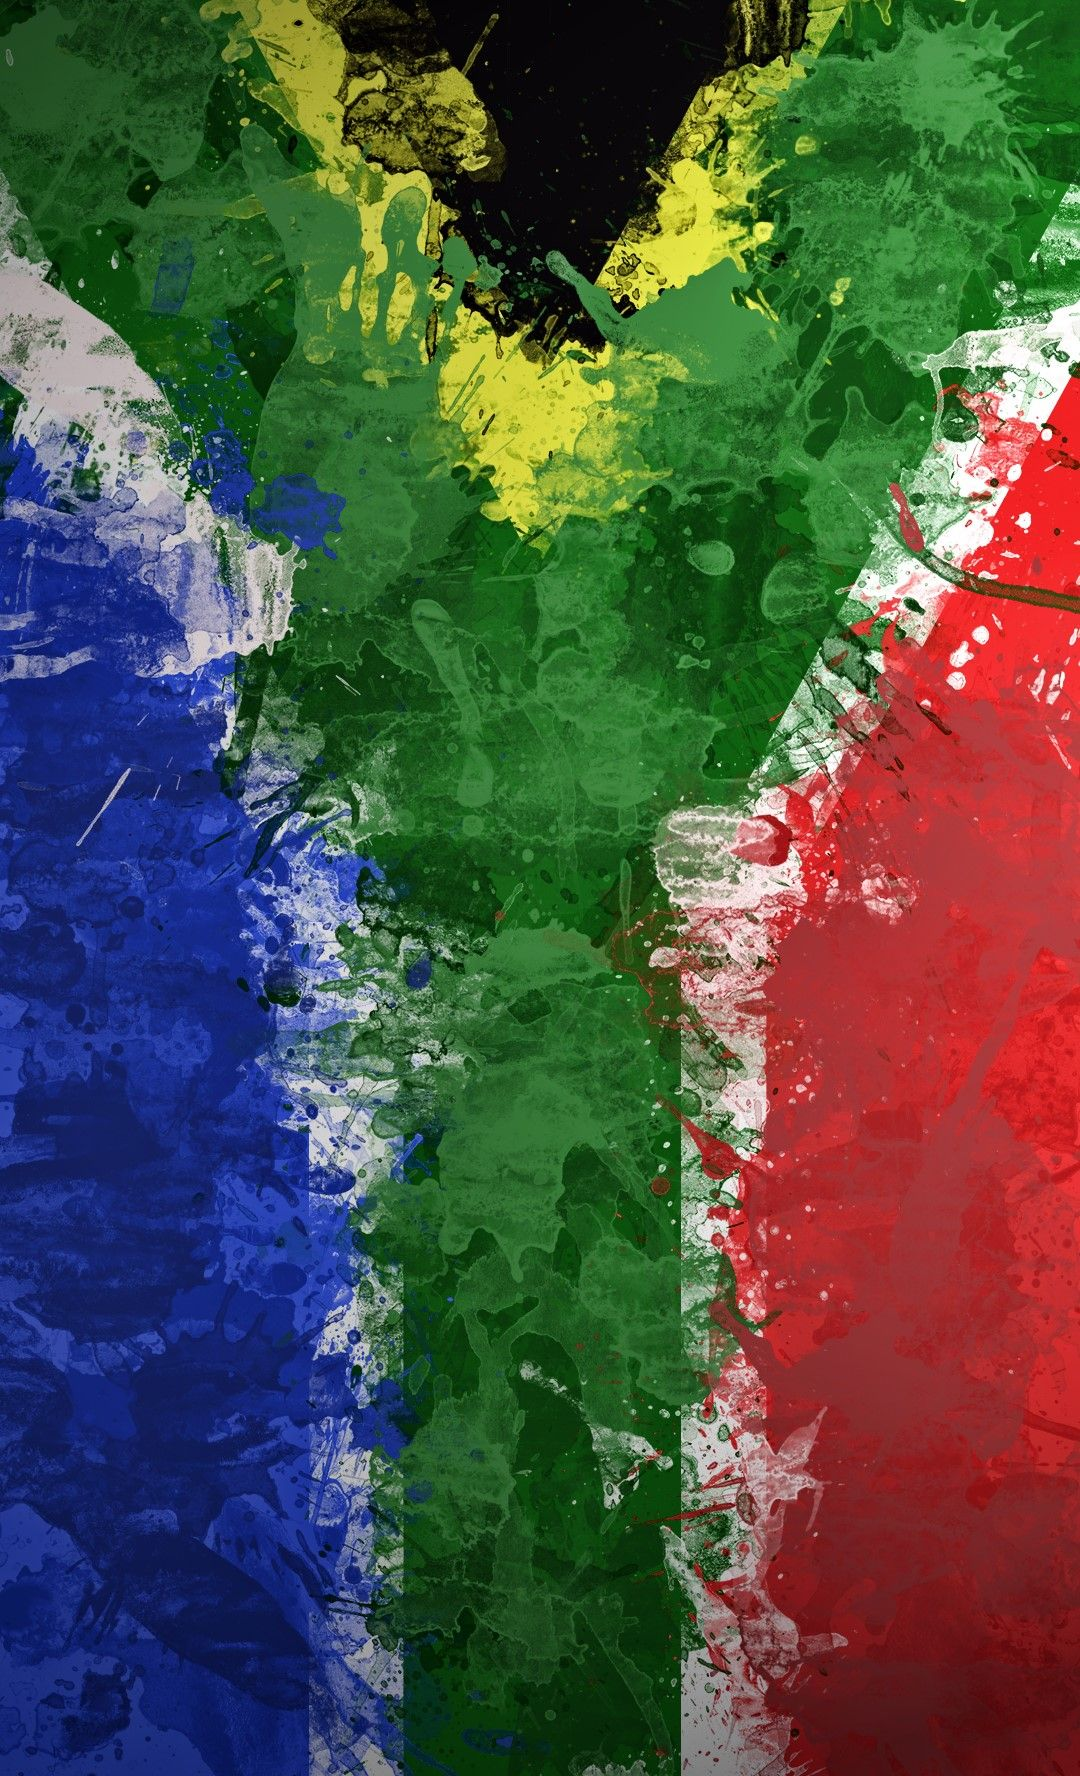 1080x1776 27+] South Africa Flag Wallpapers on WallpaperSafari